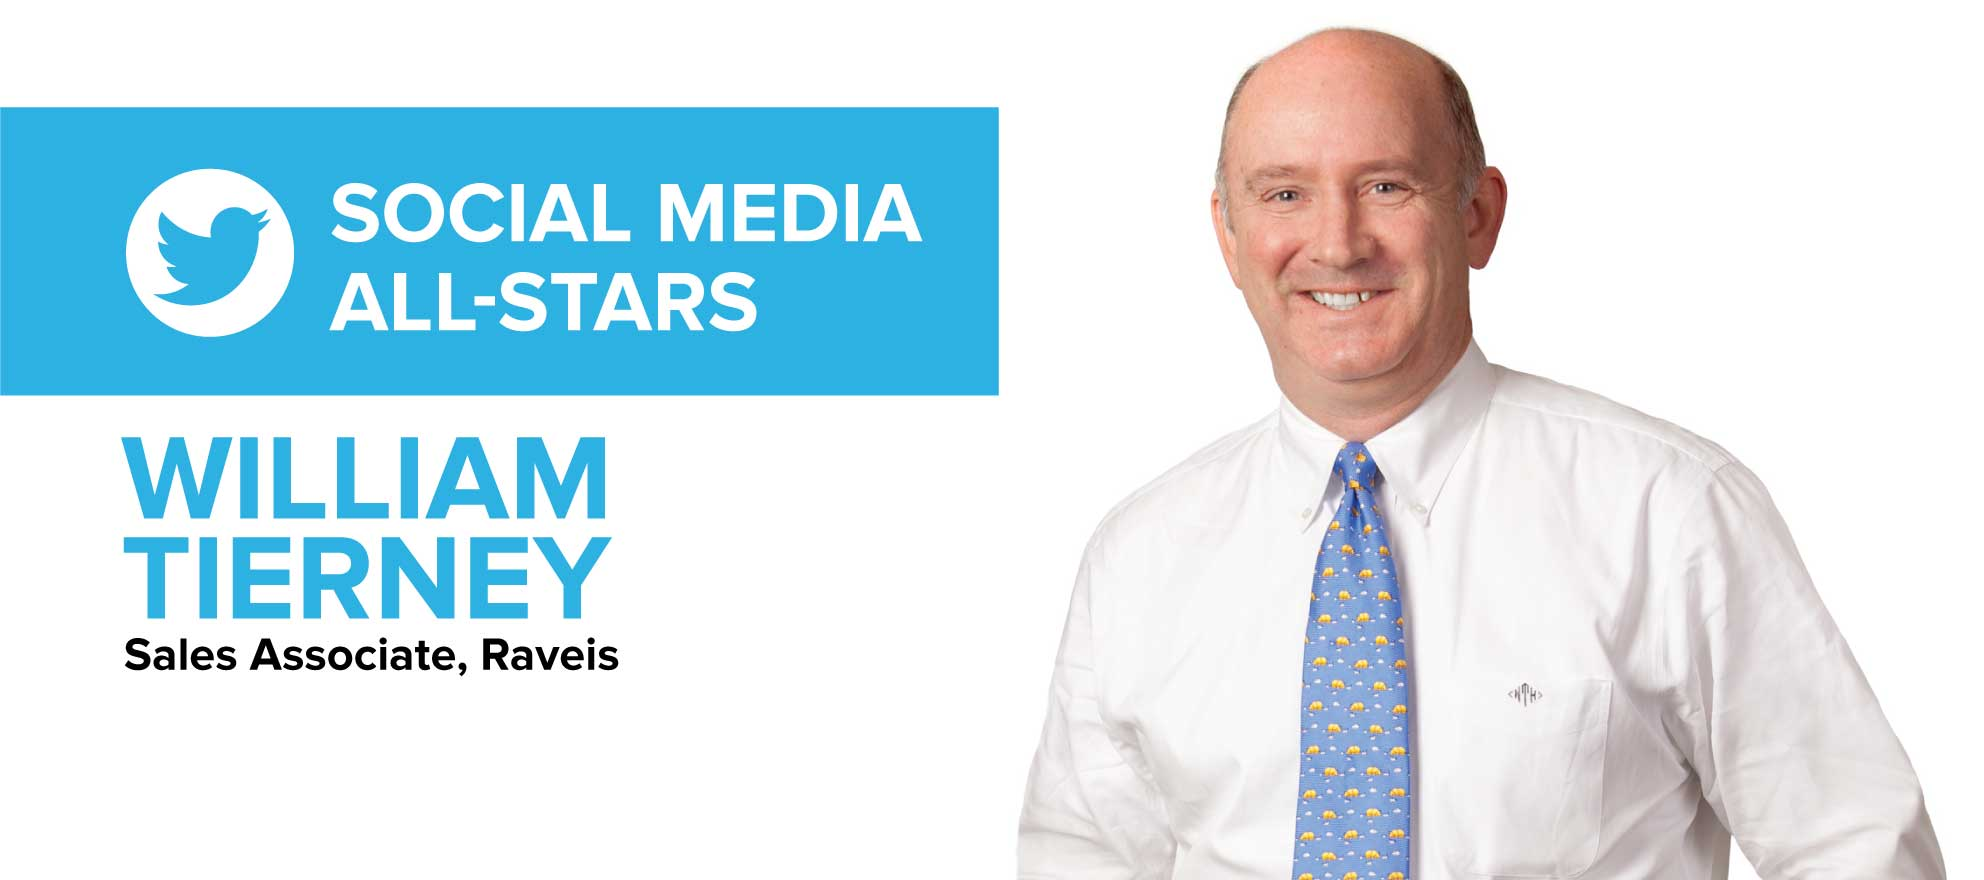 William Tierney: 'Social media is an awesome listing tool, and it does land me sellers'